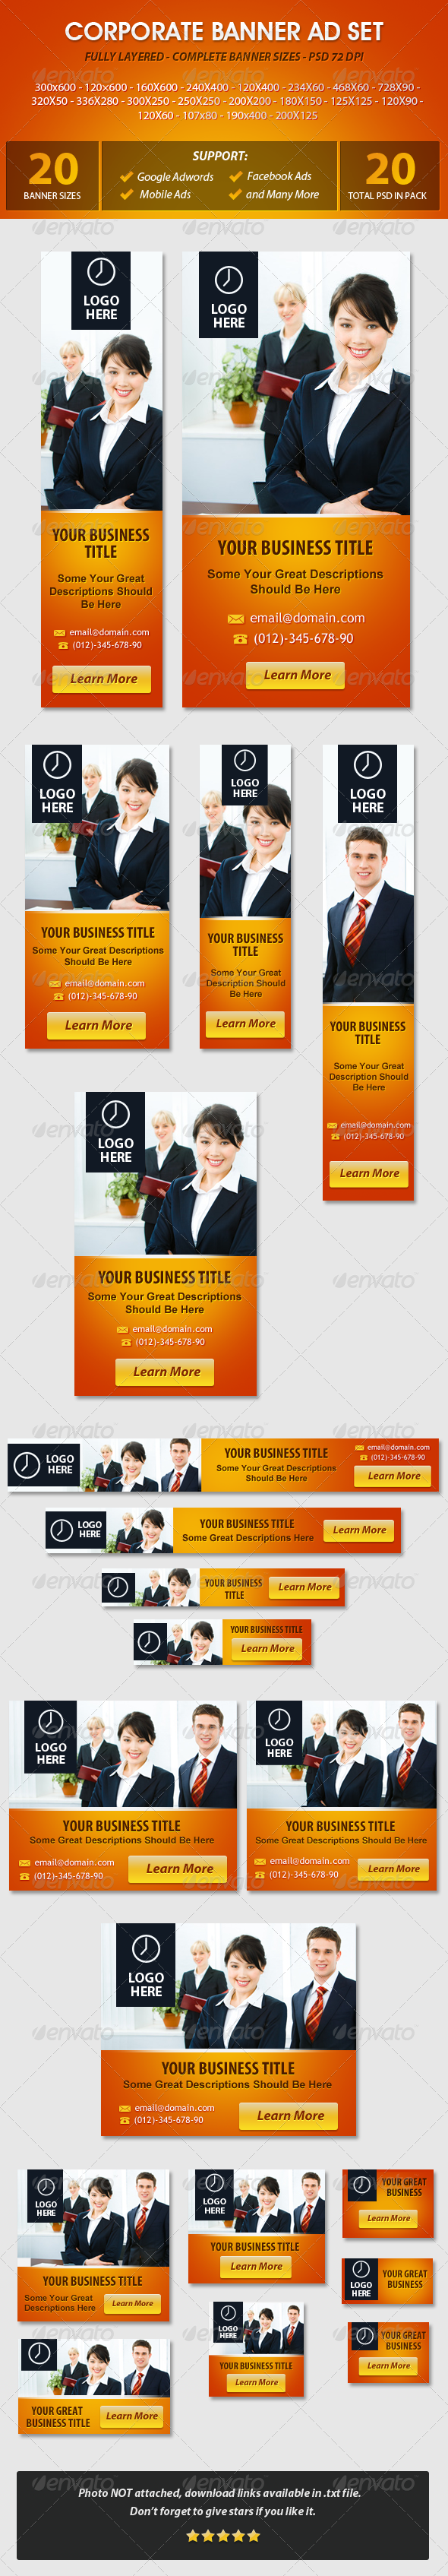 GraphicRiver Corporate Banner ad Set 5503792